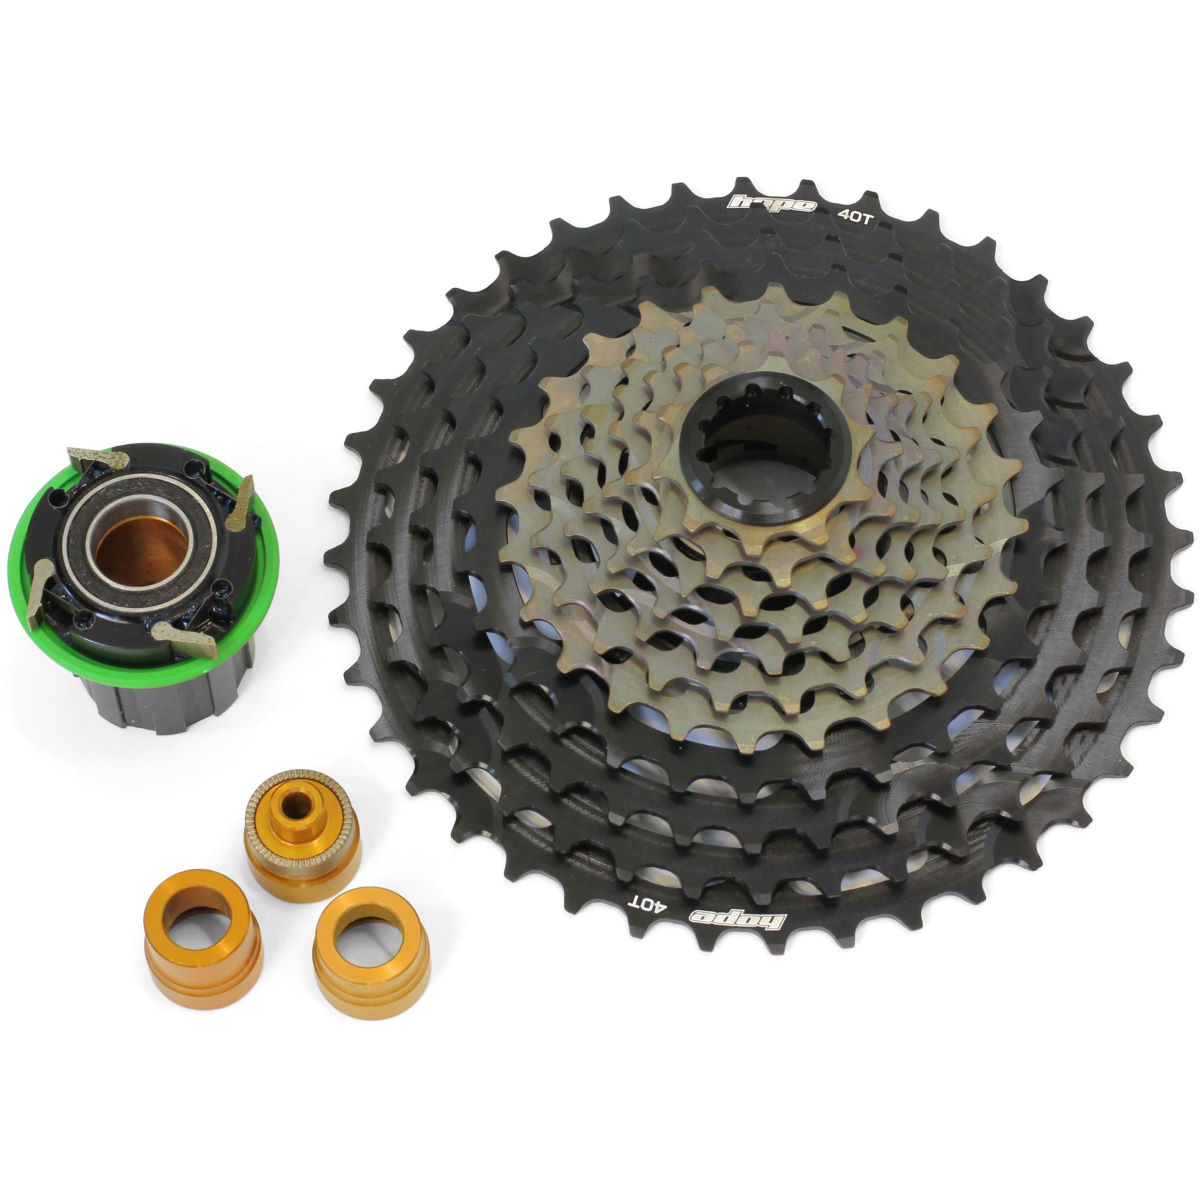 Hope Hope 11 Speed Cassette with Pro 4 Freehub   Cassettes